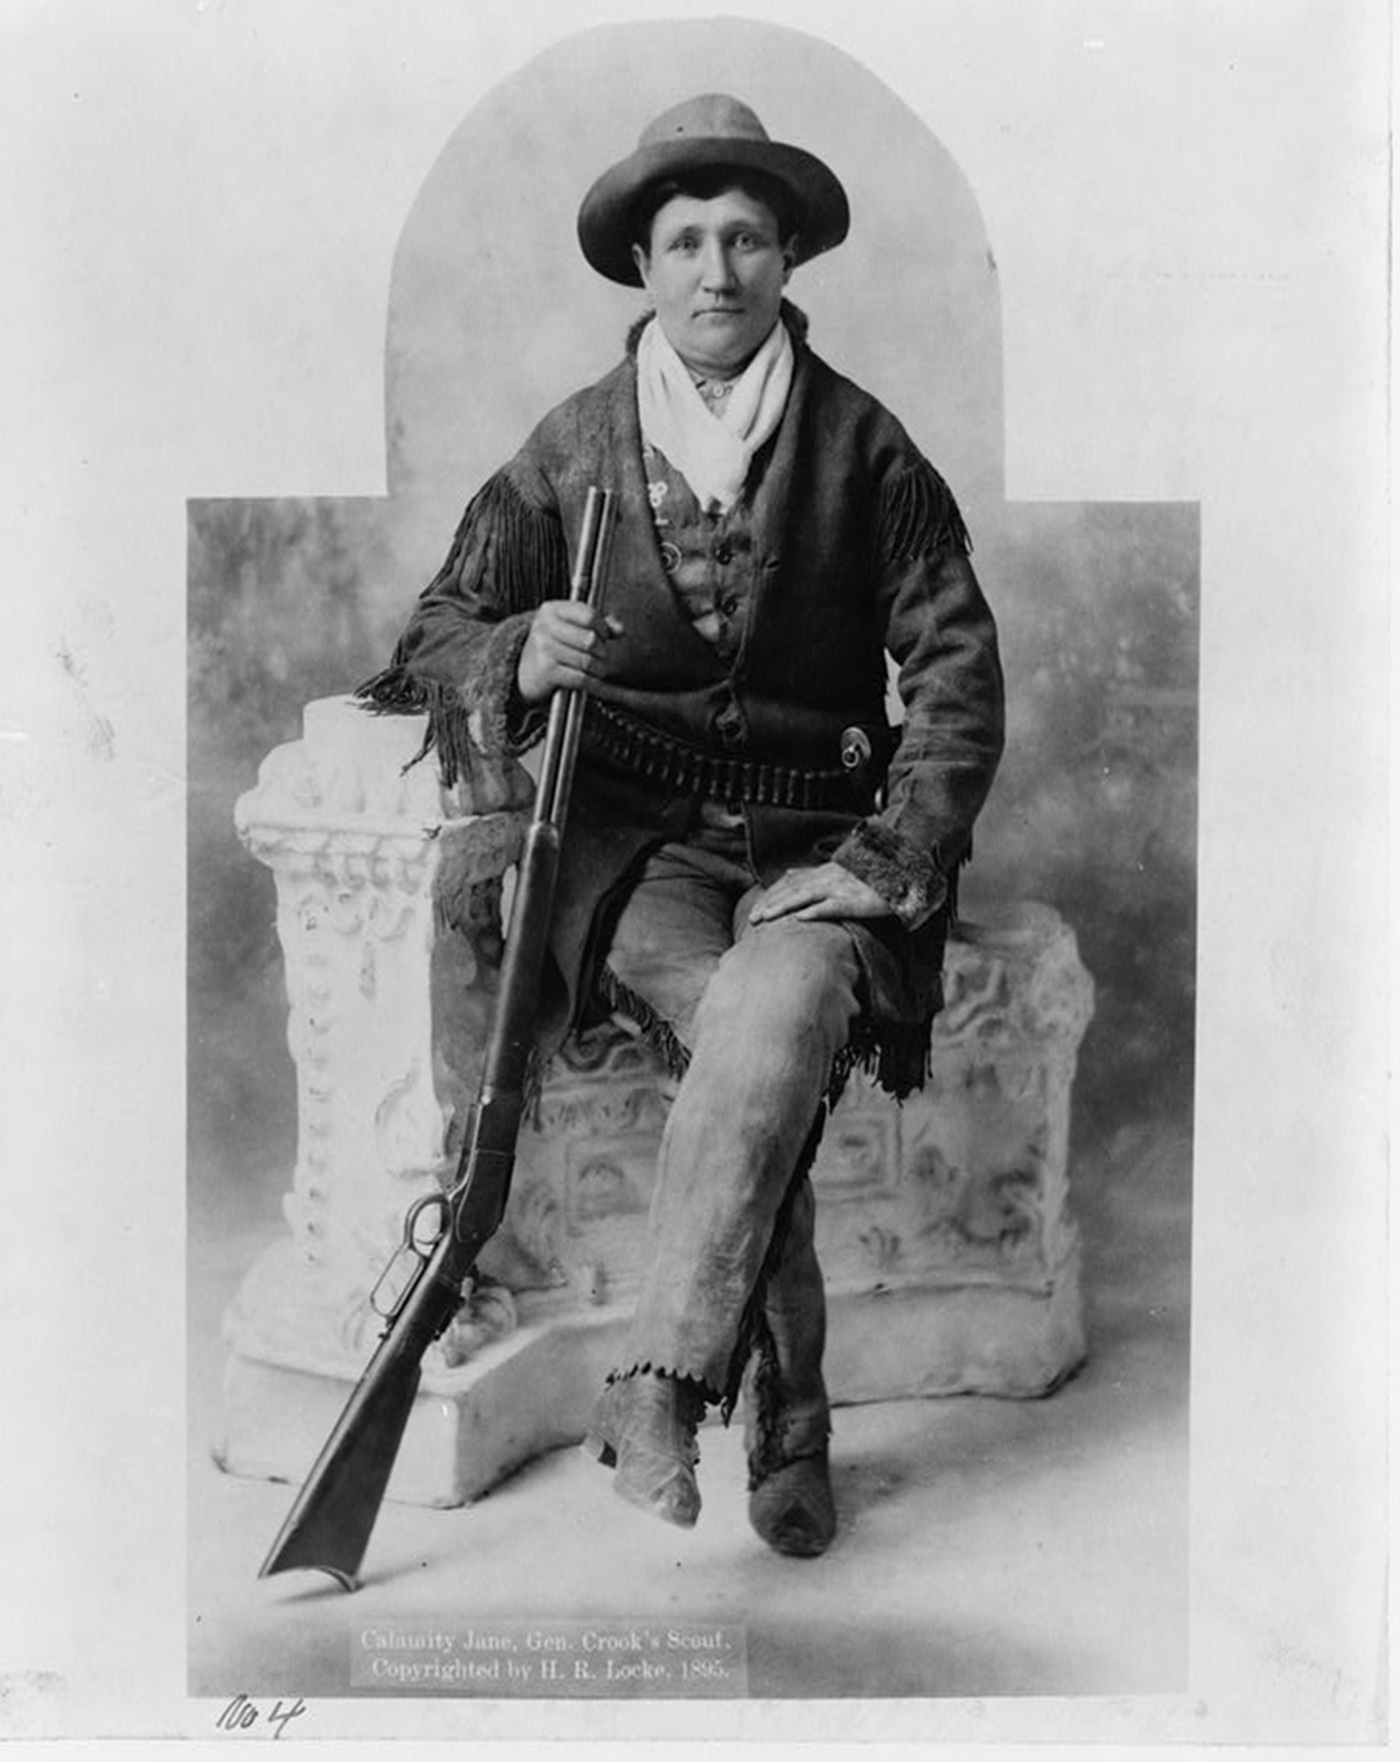 Rodeos Wild West Shows And The Mythic American West